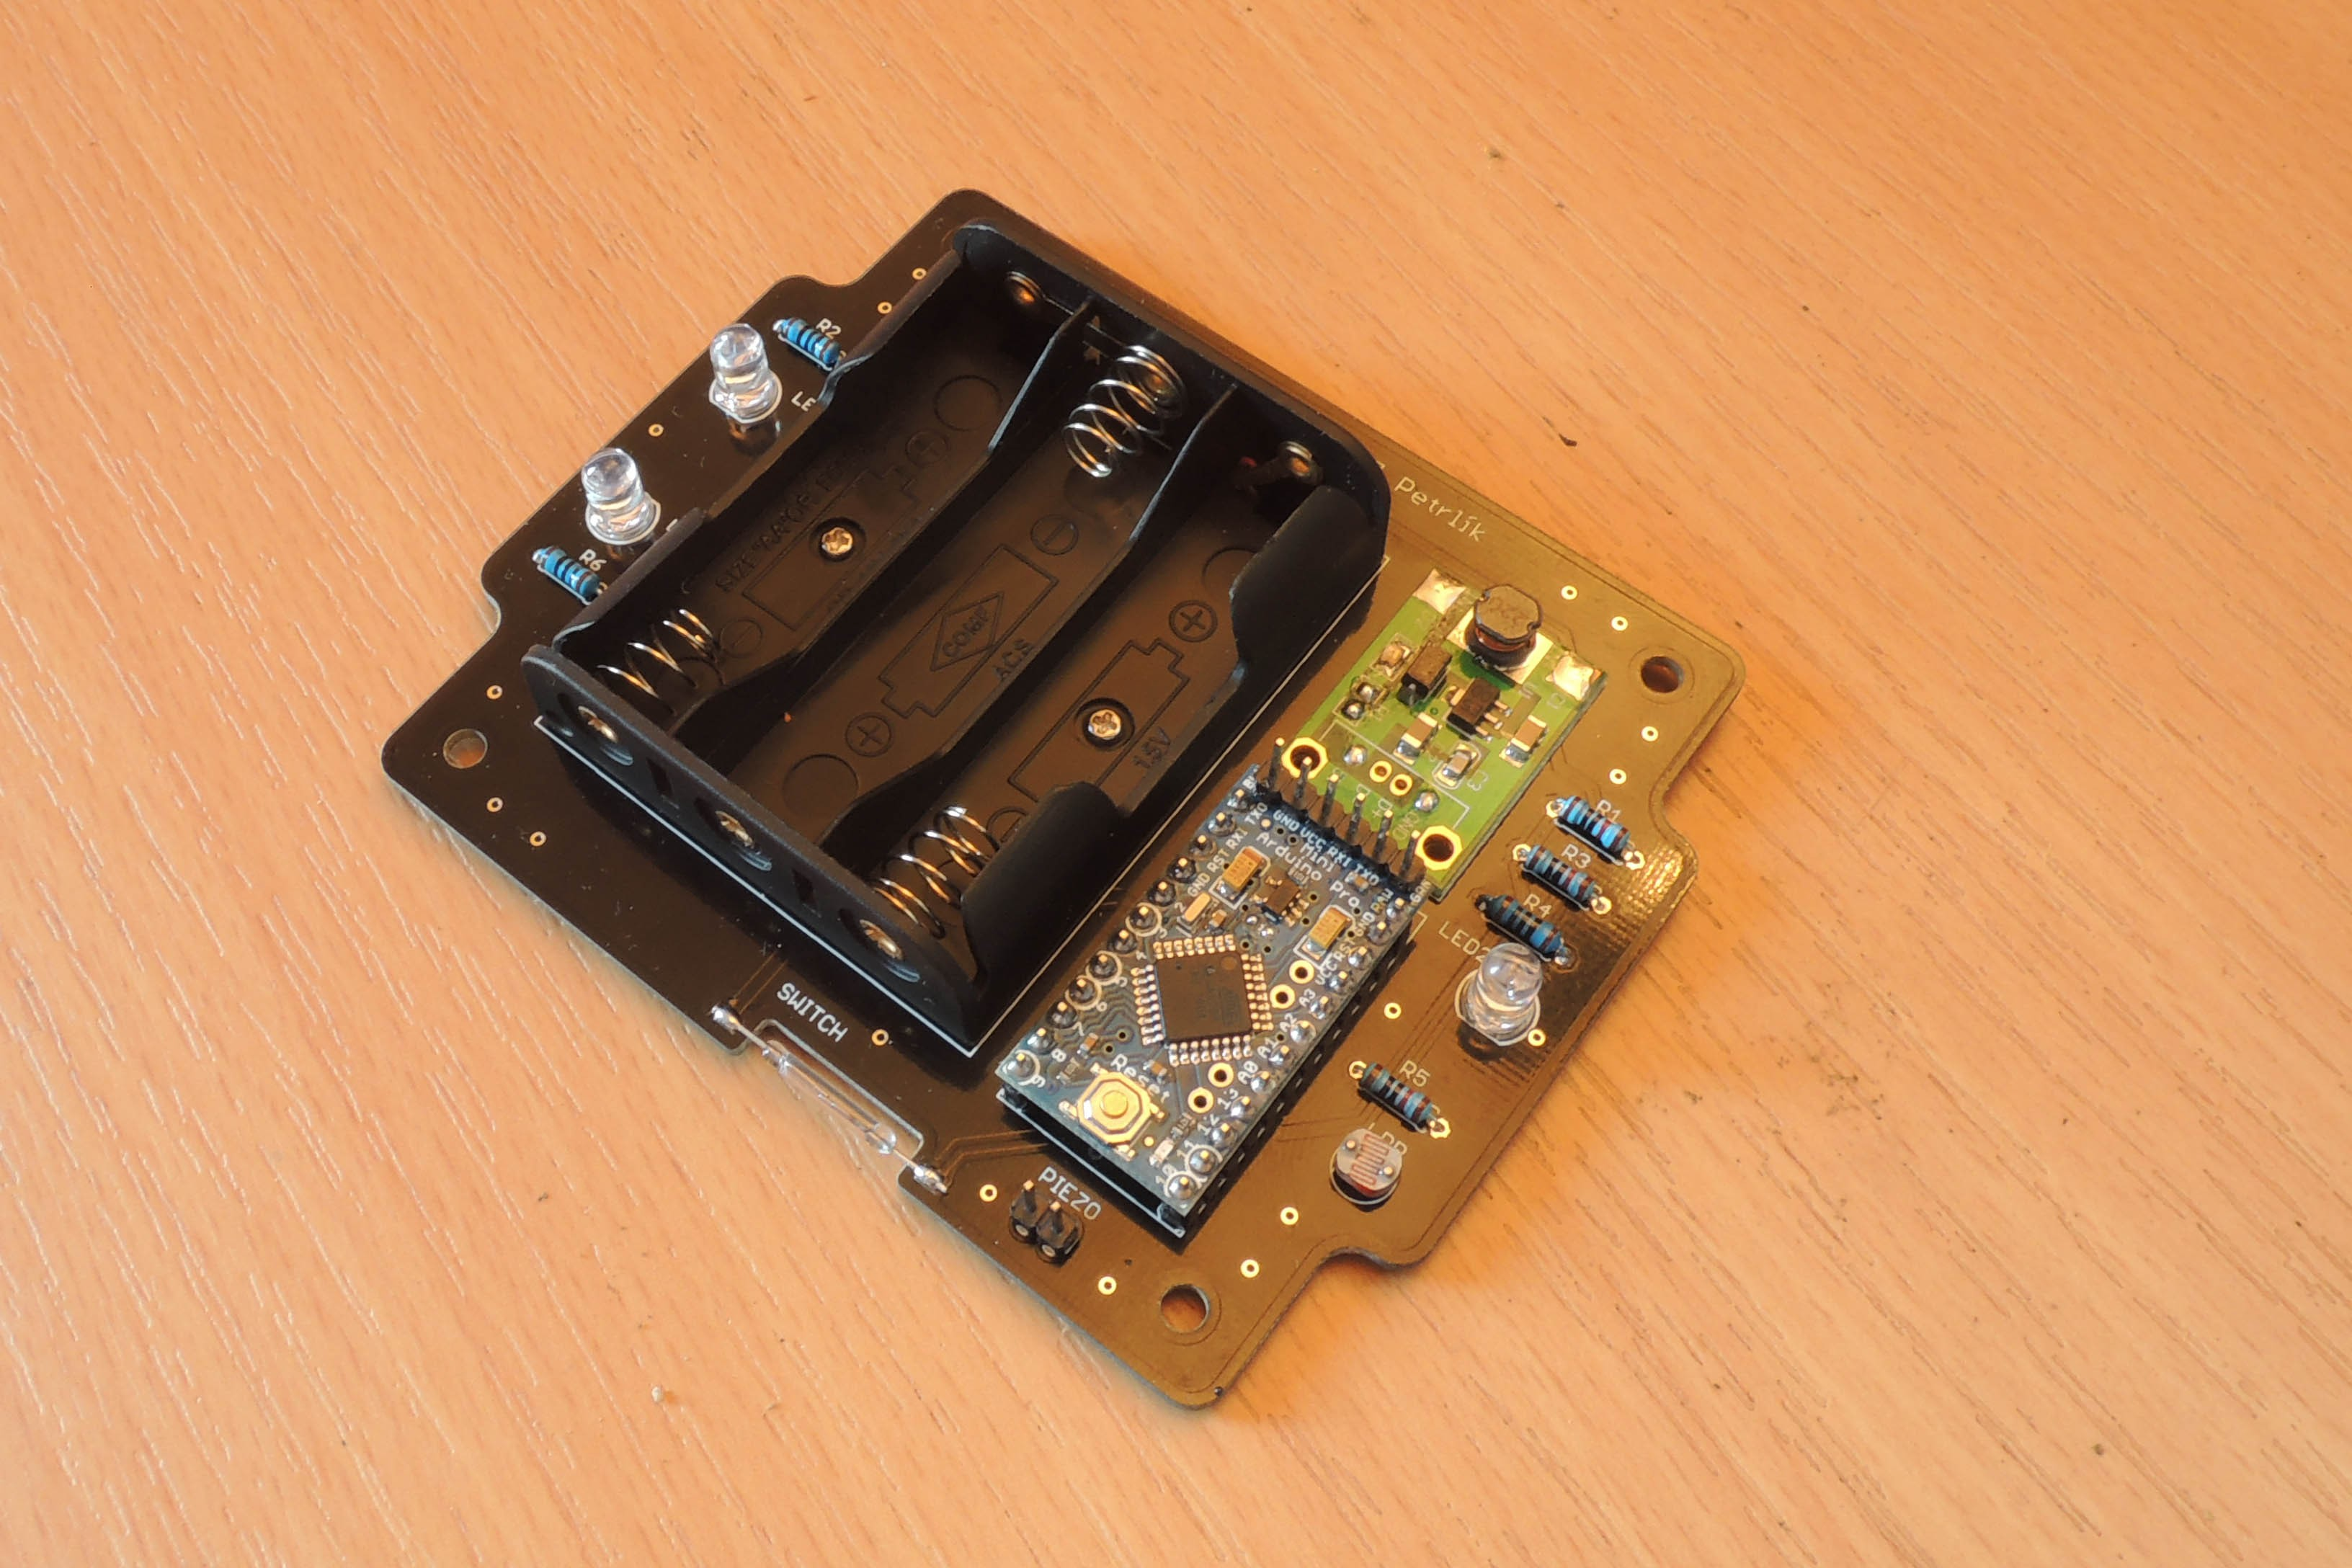 Deer Electronic Repeller Circuit Board Attached To A Small Piezo Speaker And Powered By Two Aa Custom Dc Power Supply Has Been Replaced With Module From China For Accessibility Everyone Easier Soldering